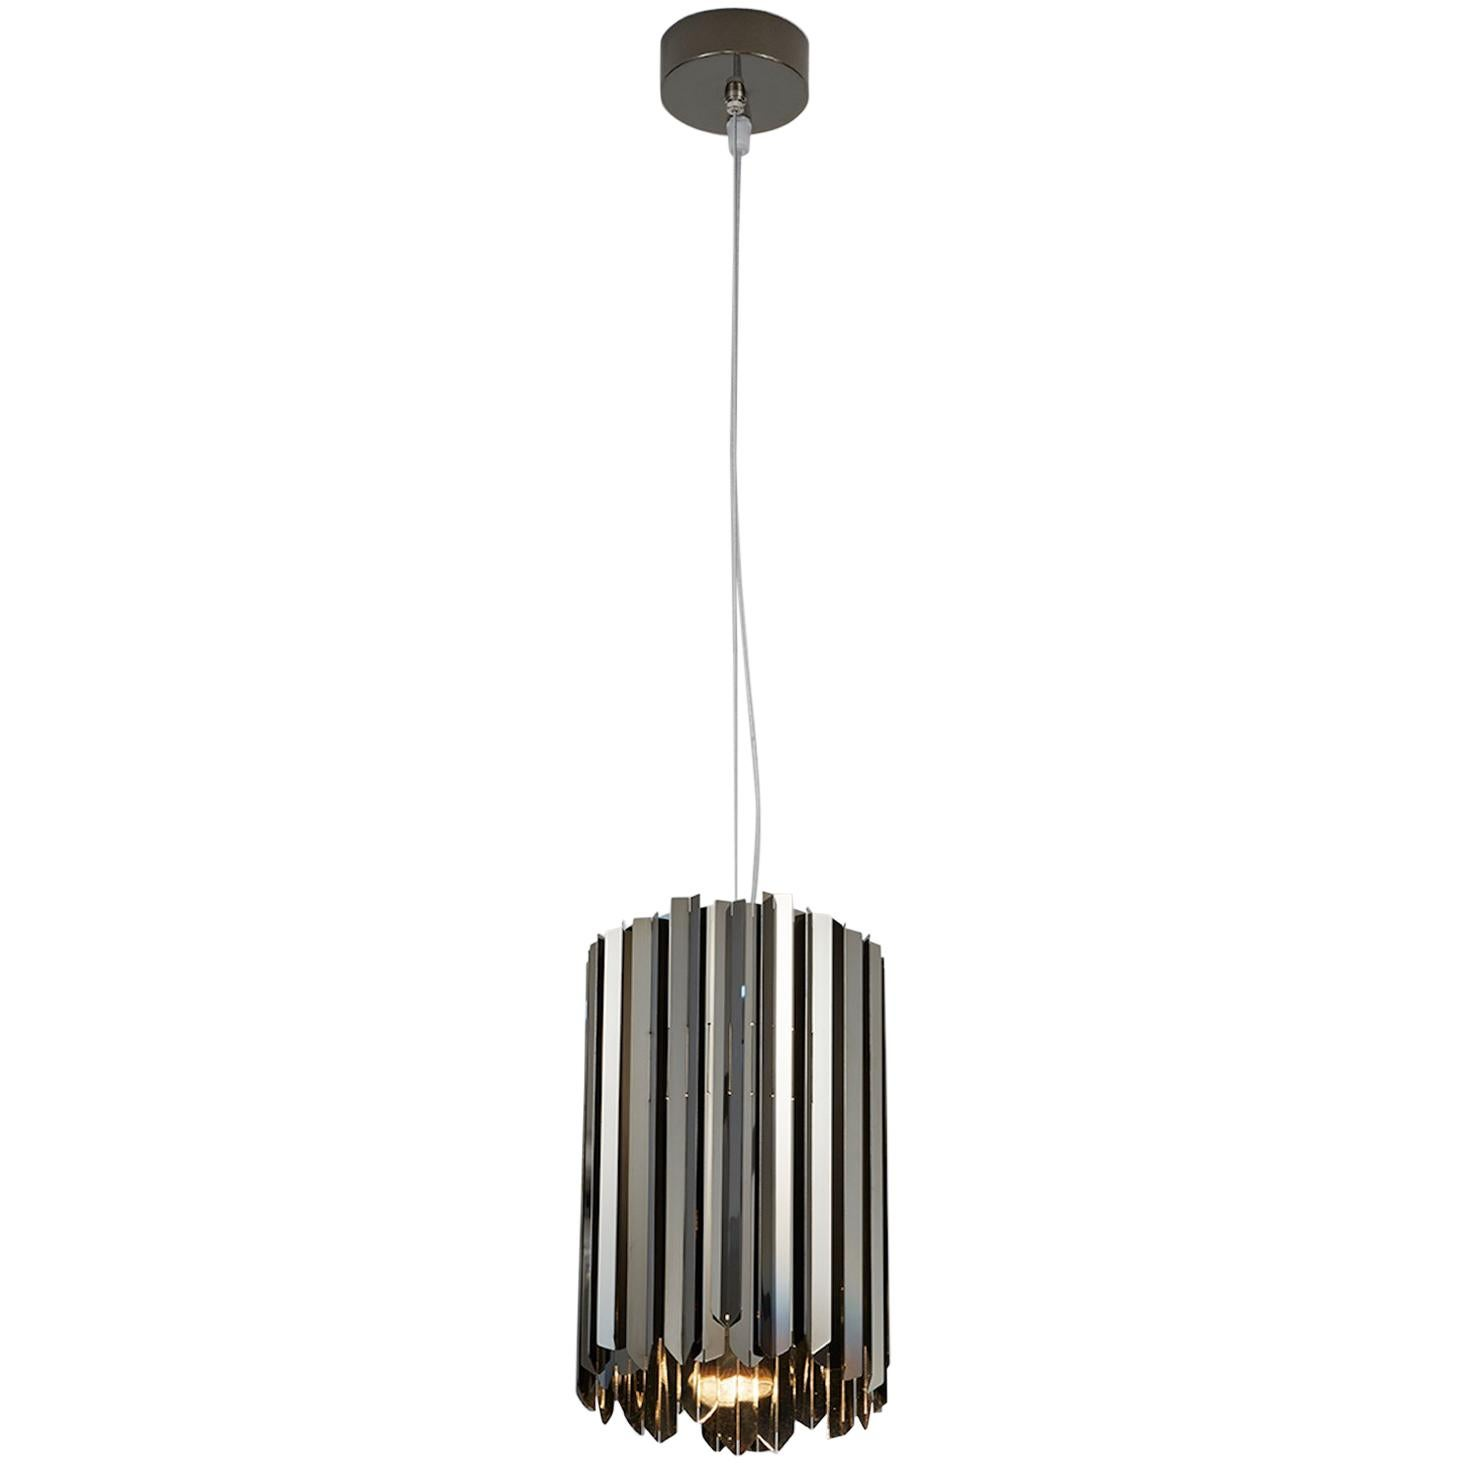 Facet Pendant by Tom Kirk in Polished Black Nickel